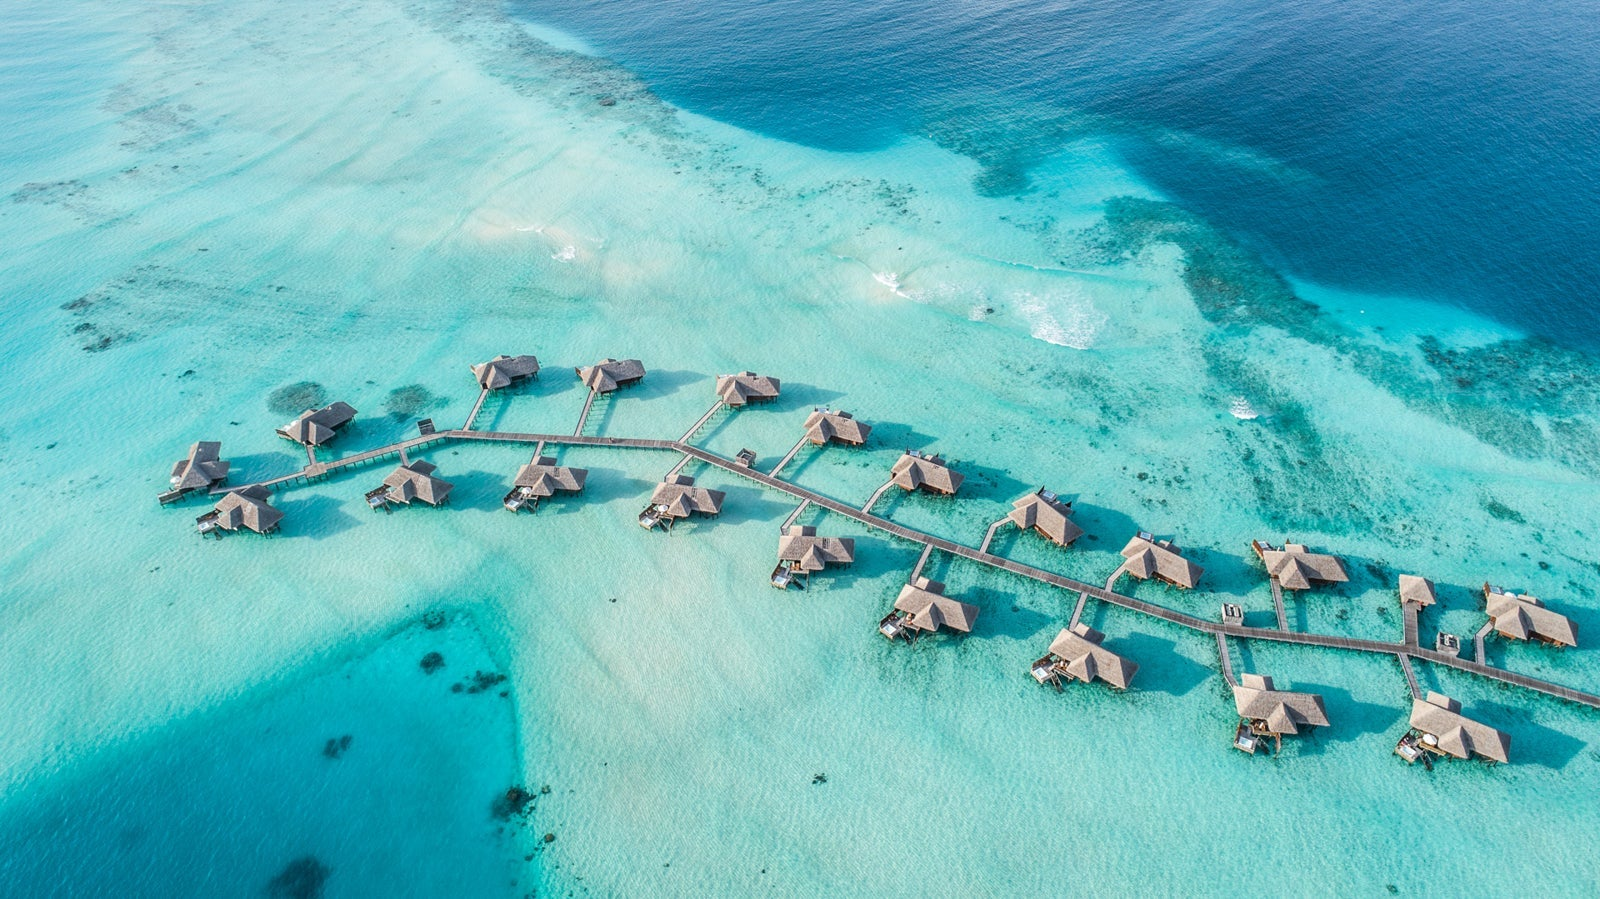 Loyal to paradise: All you need to know about the Maldives' Border Miles program - The Points Guy